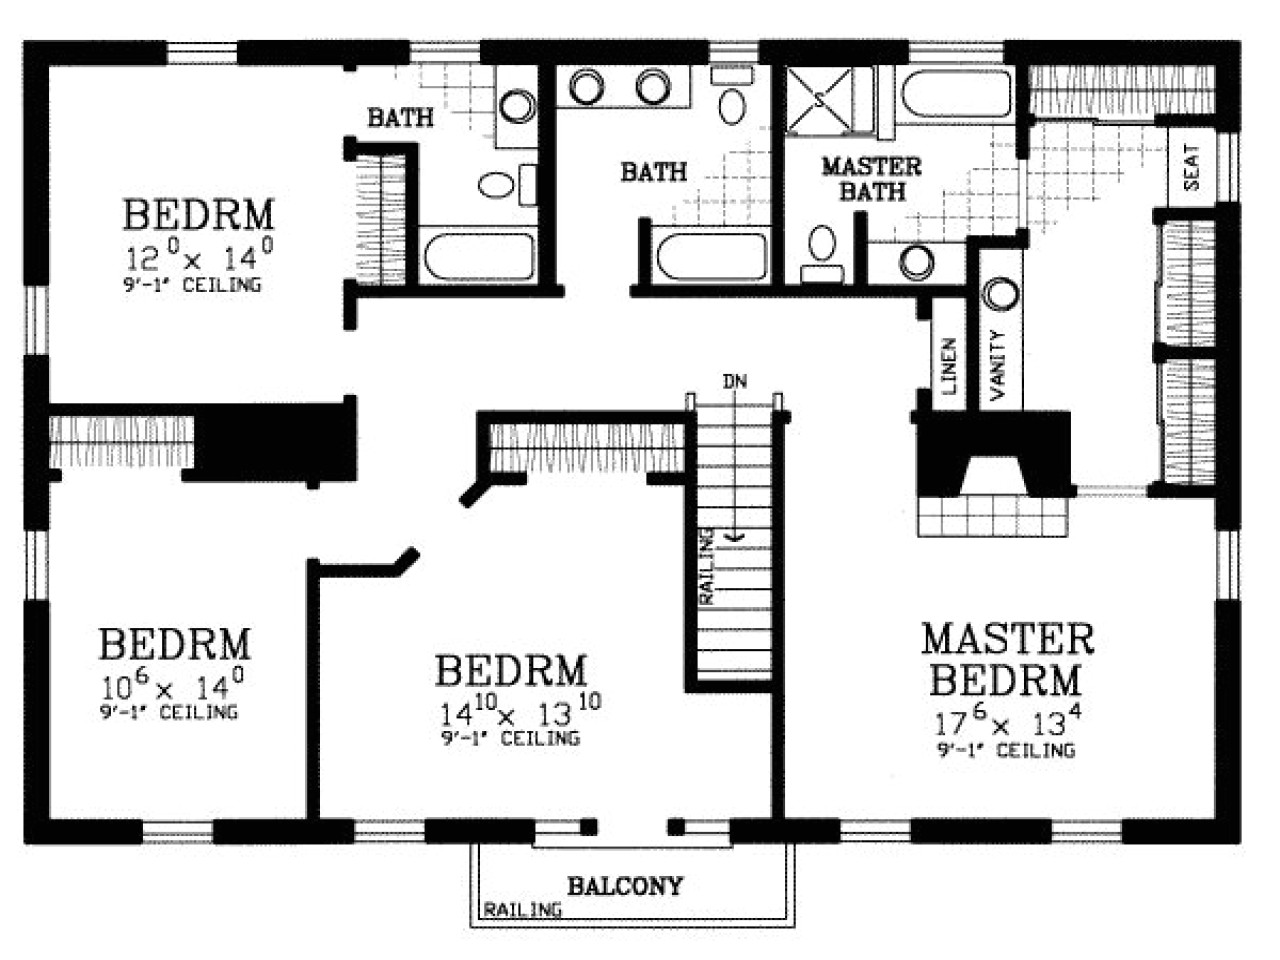 4 bedroom house floor plans free